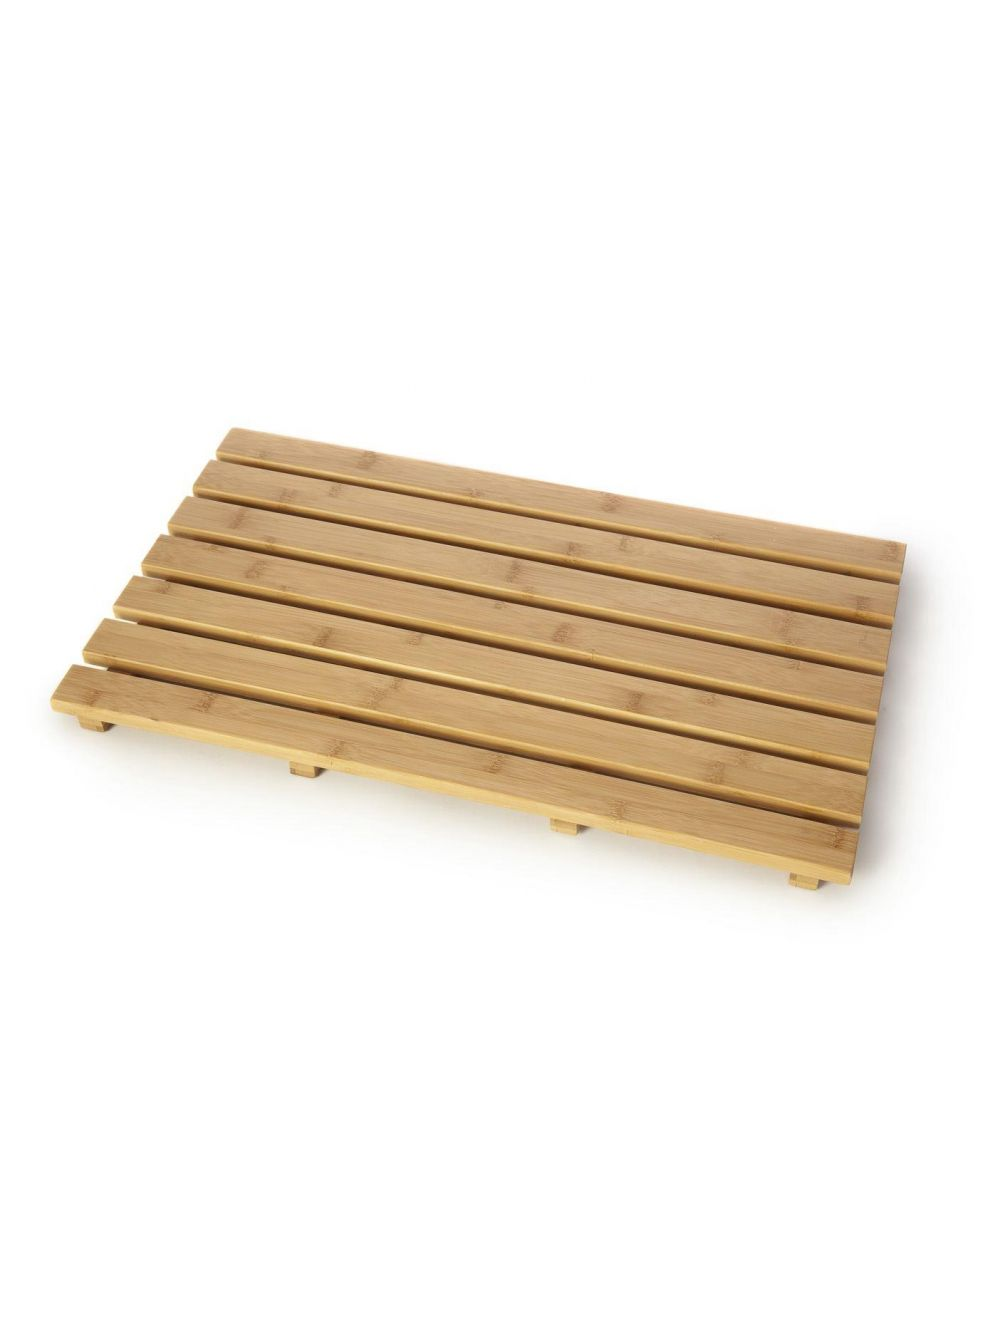 Buy Anti Slip Duck Board Natural Wood Wooden Bathroom Rectangular Bath Shower Mat From Unibos